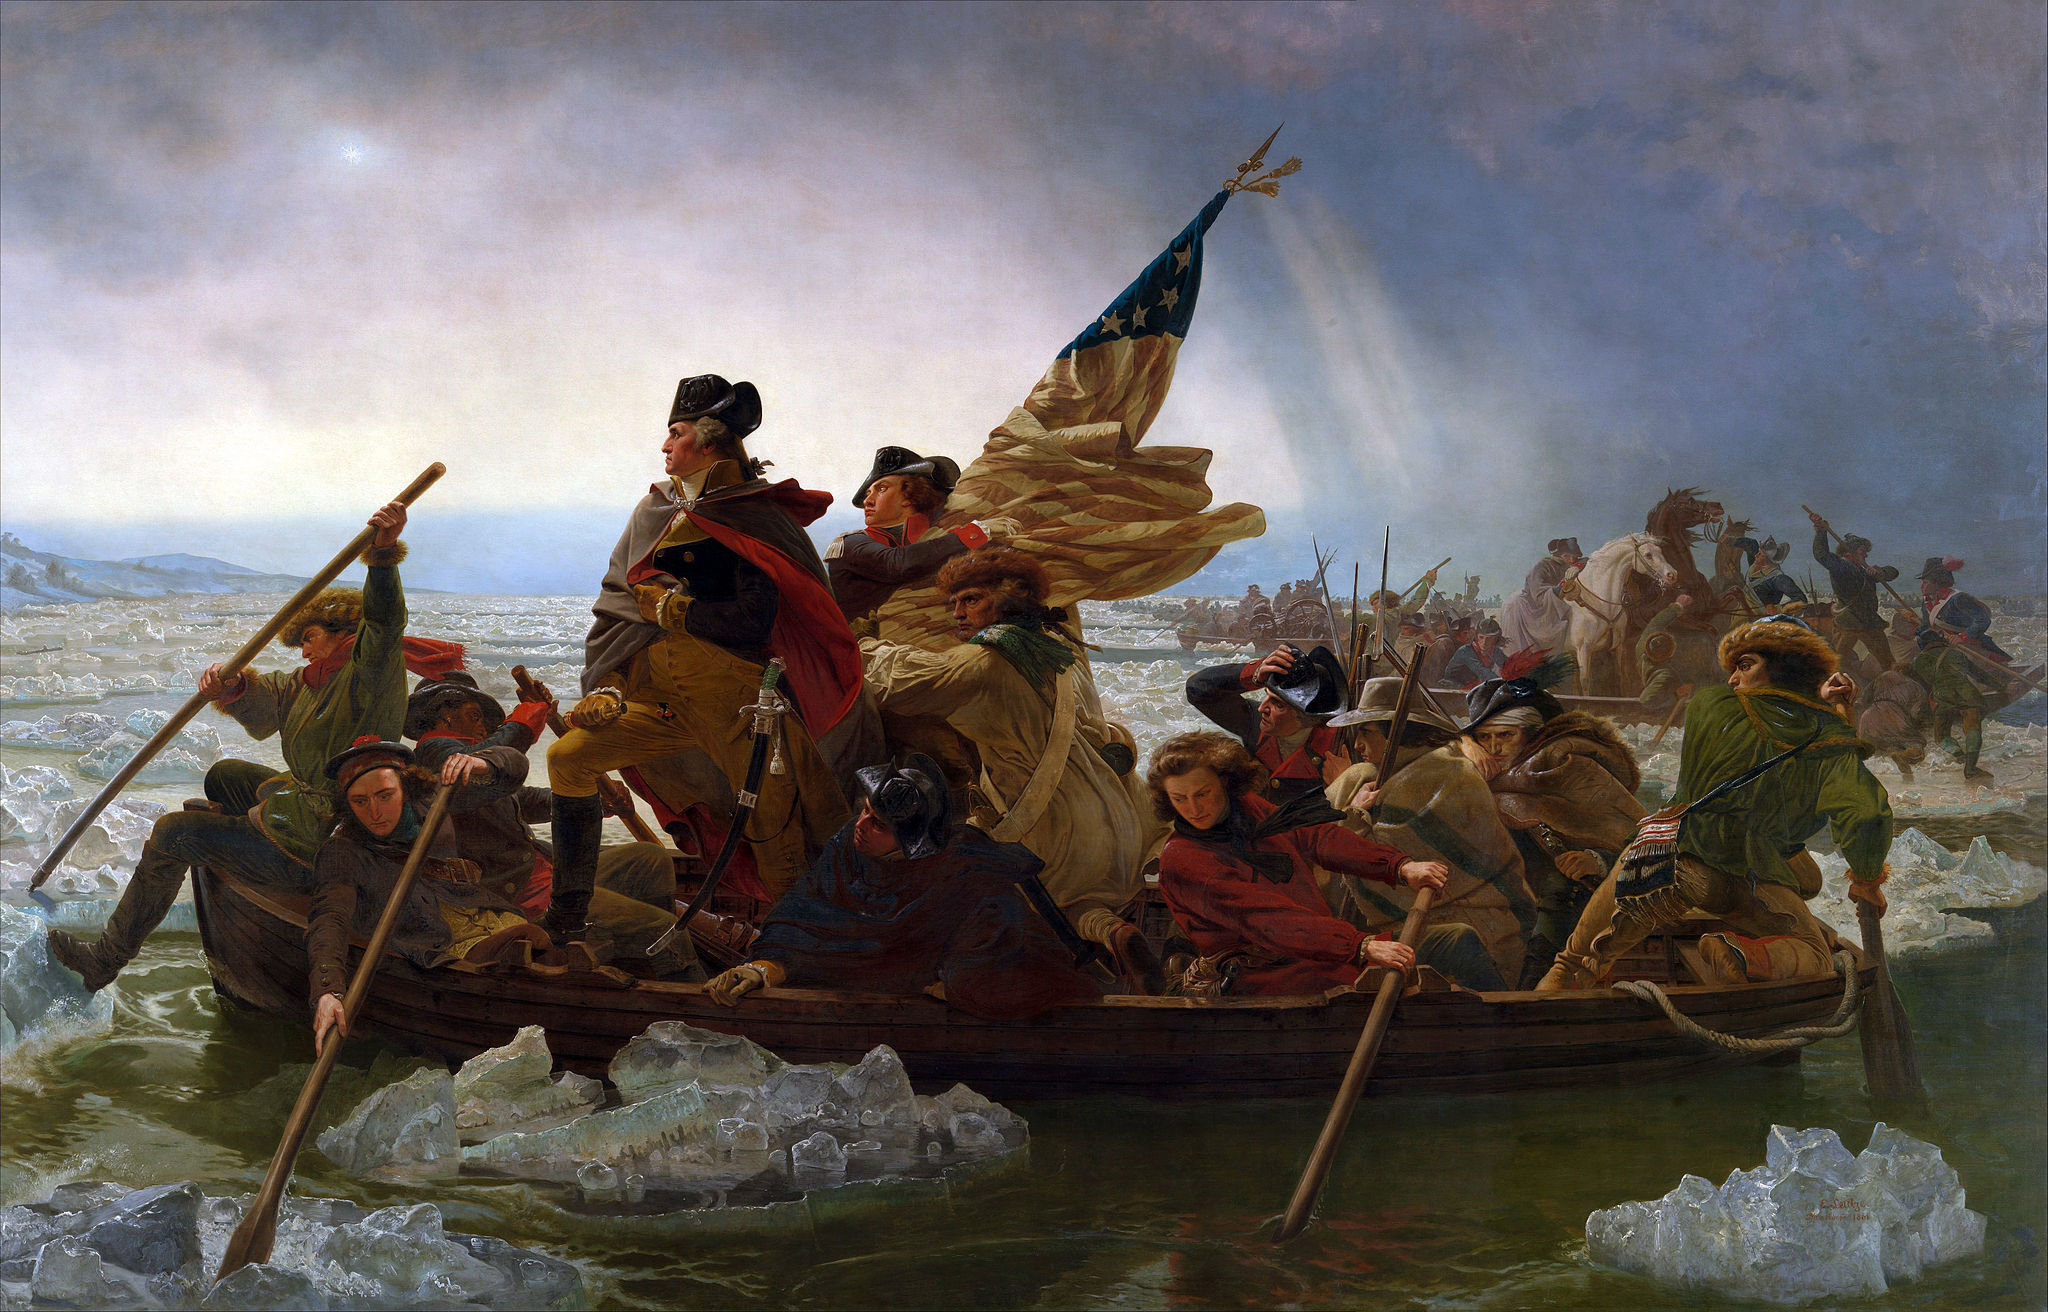 """Washington Crossing the Delaware"" (1851) by Emanuel Leutze [Public domain or Public domain], via Wikimedia Commons"